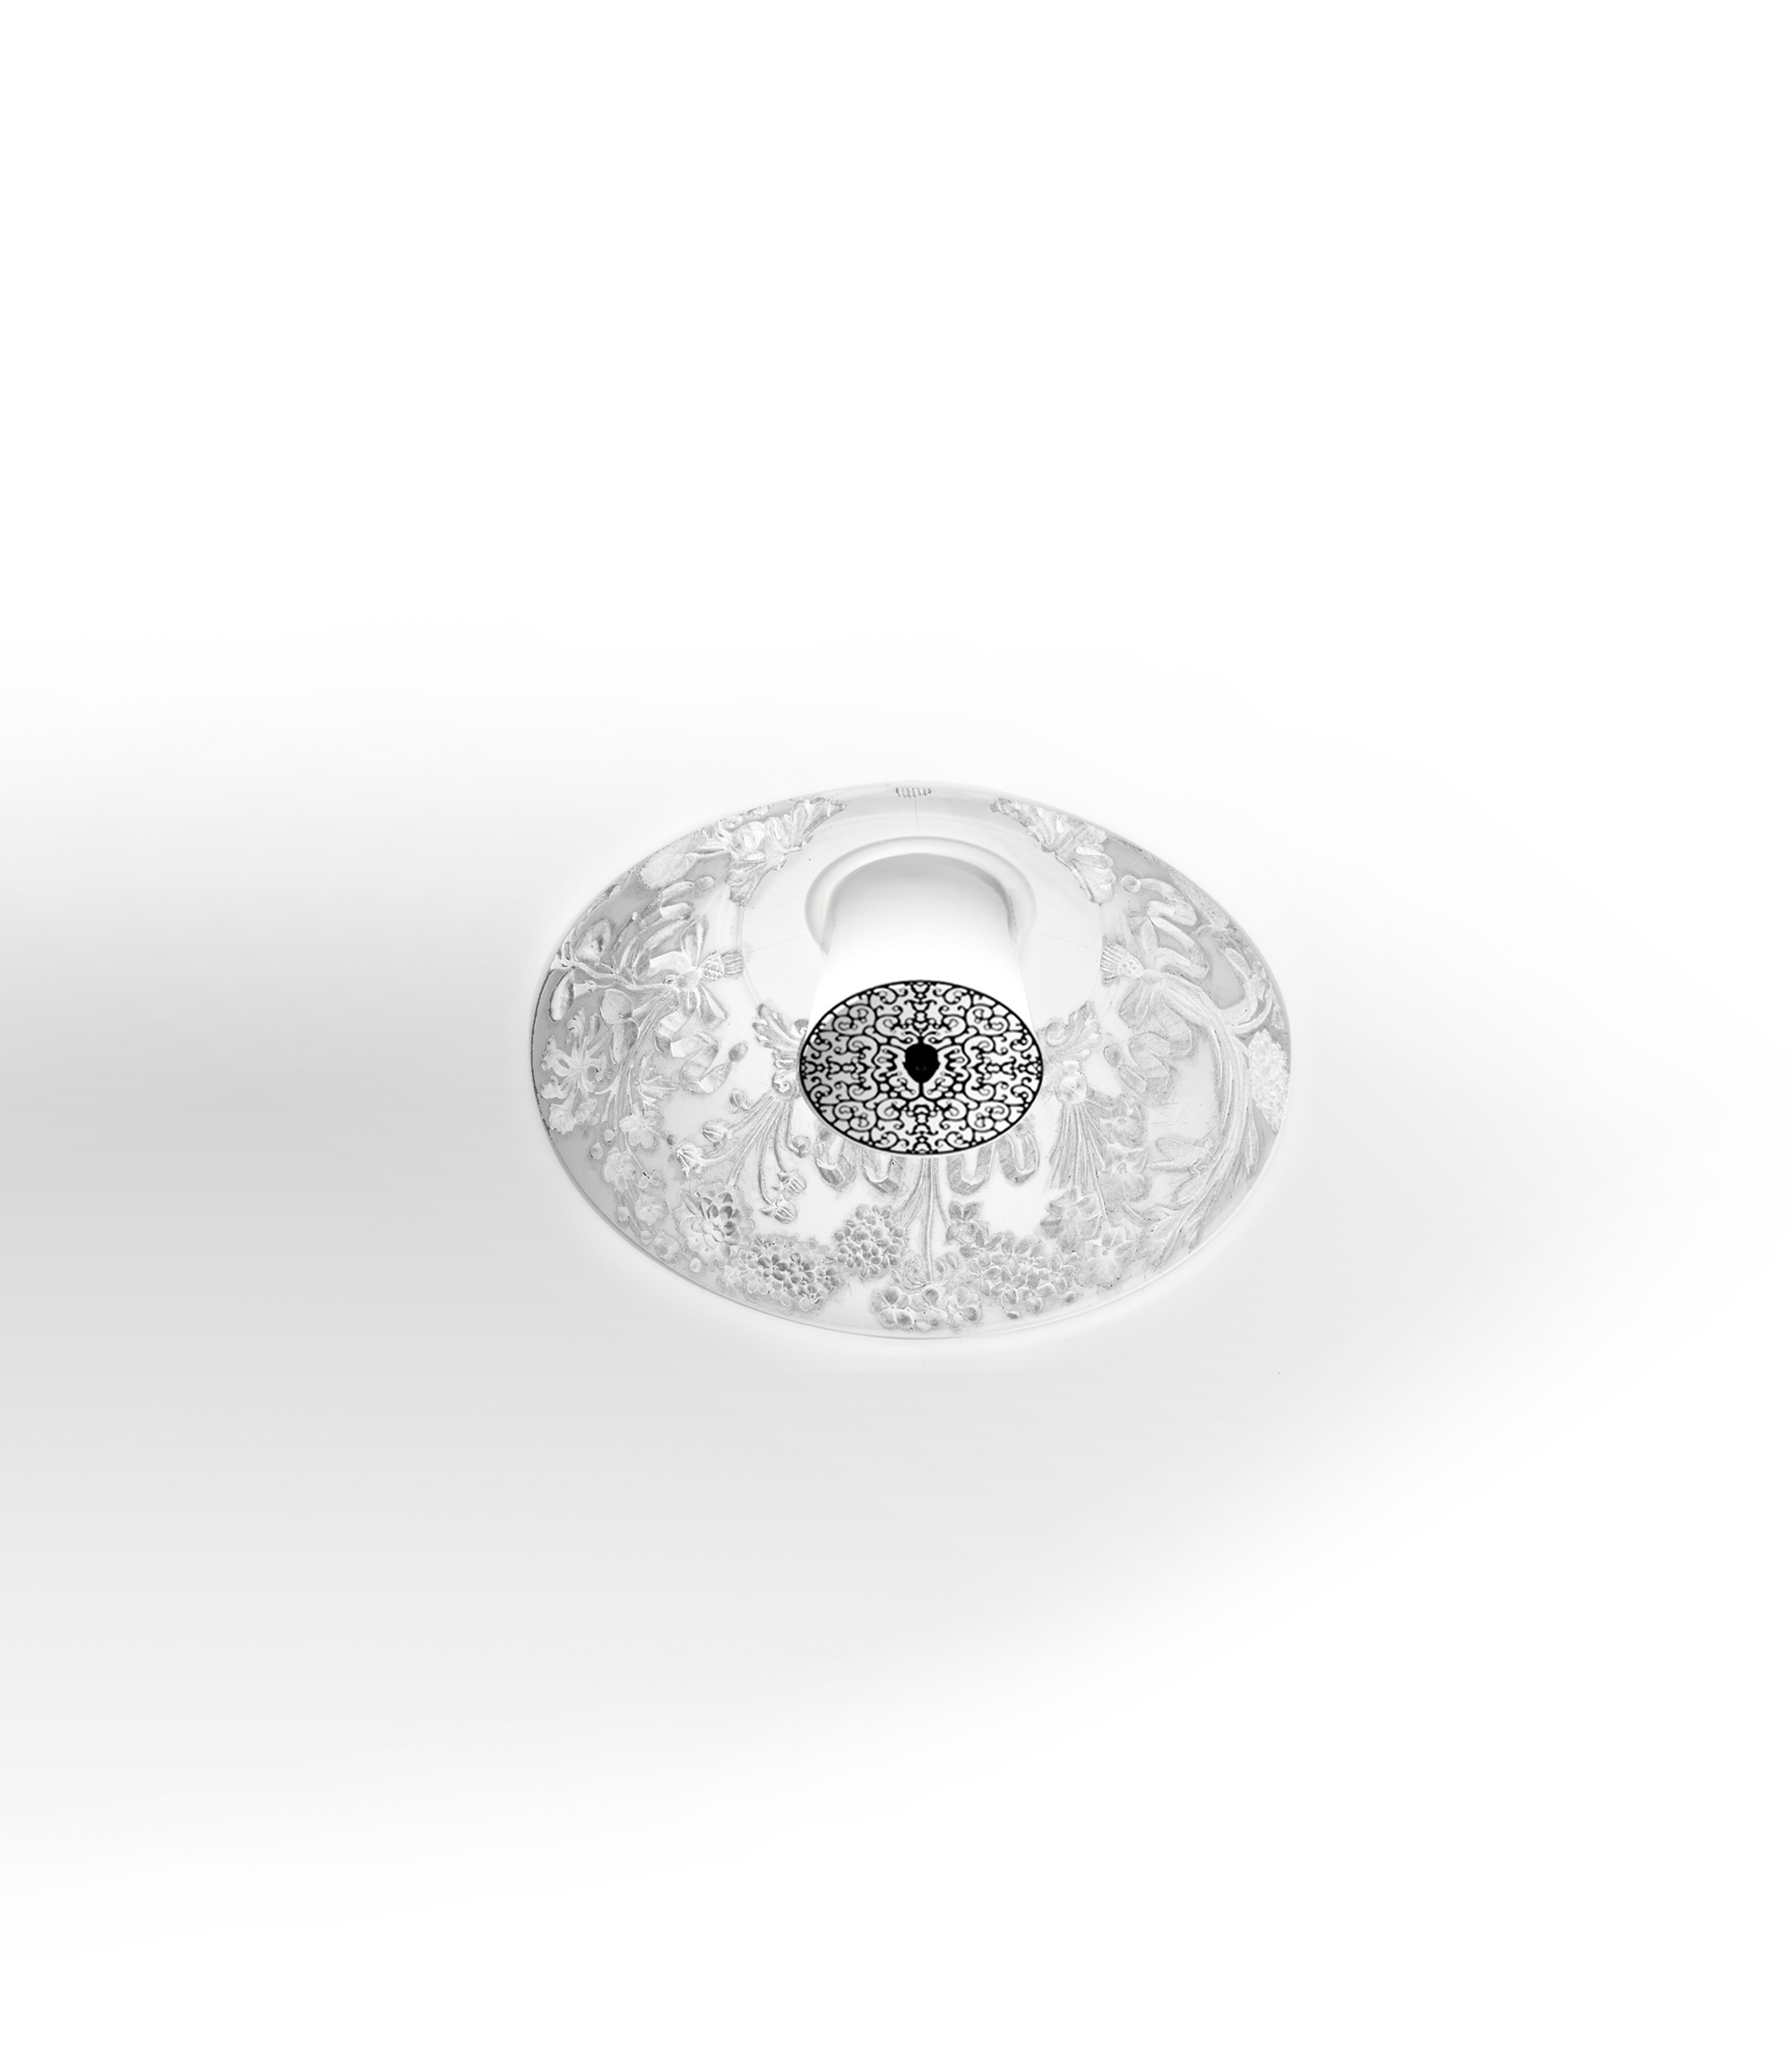 Skygarden recessed ceiling wanders flos F6433009 product still life big 3